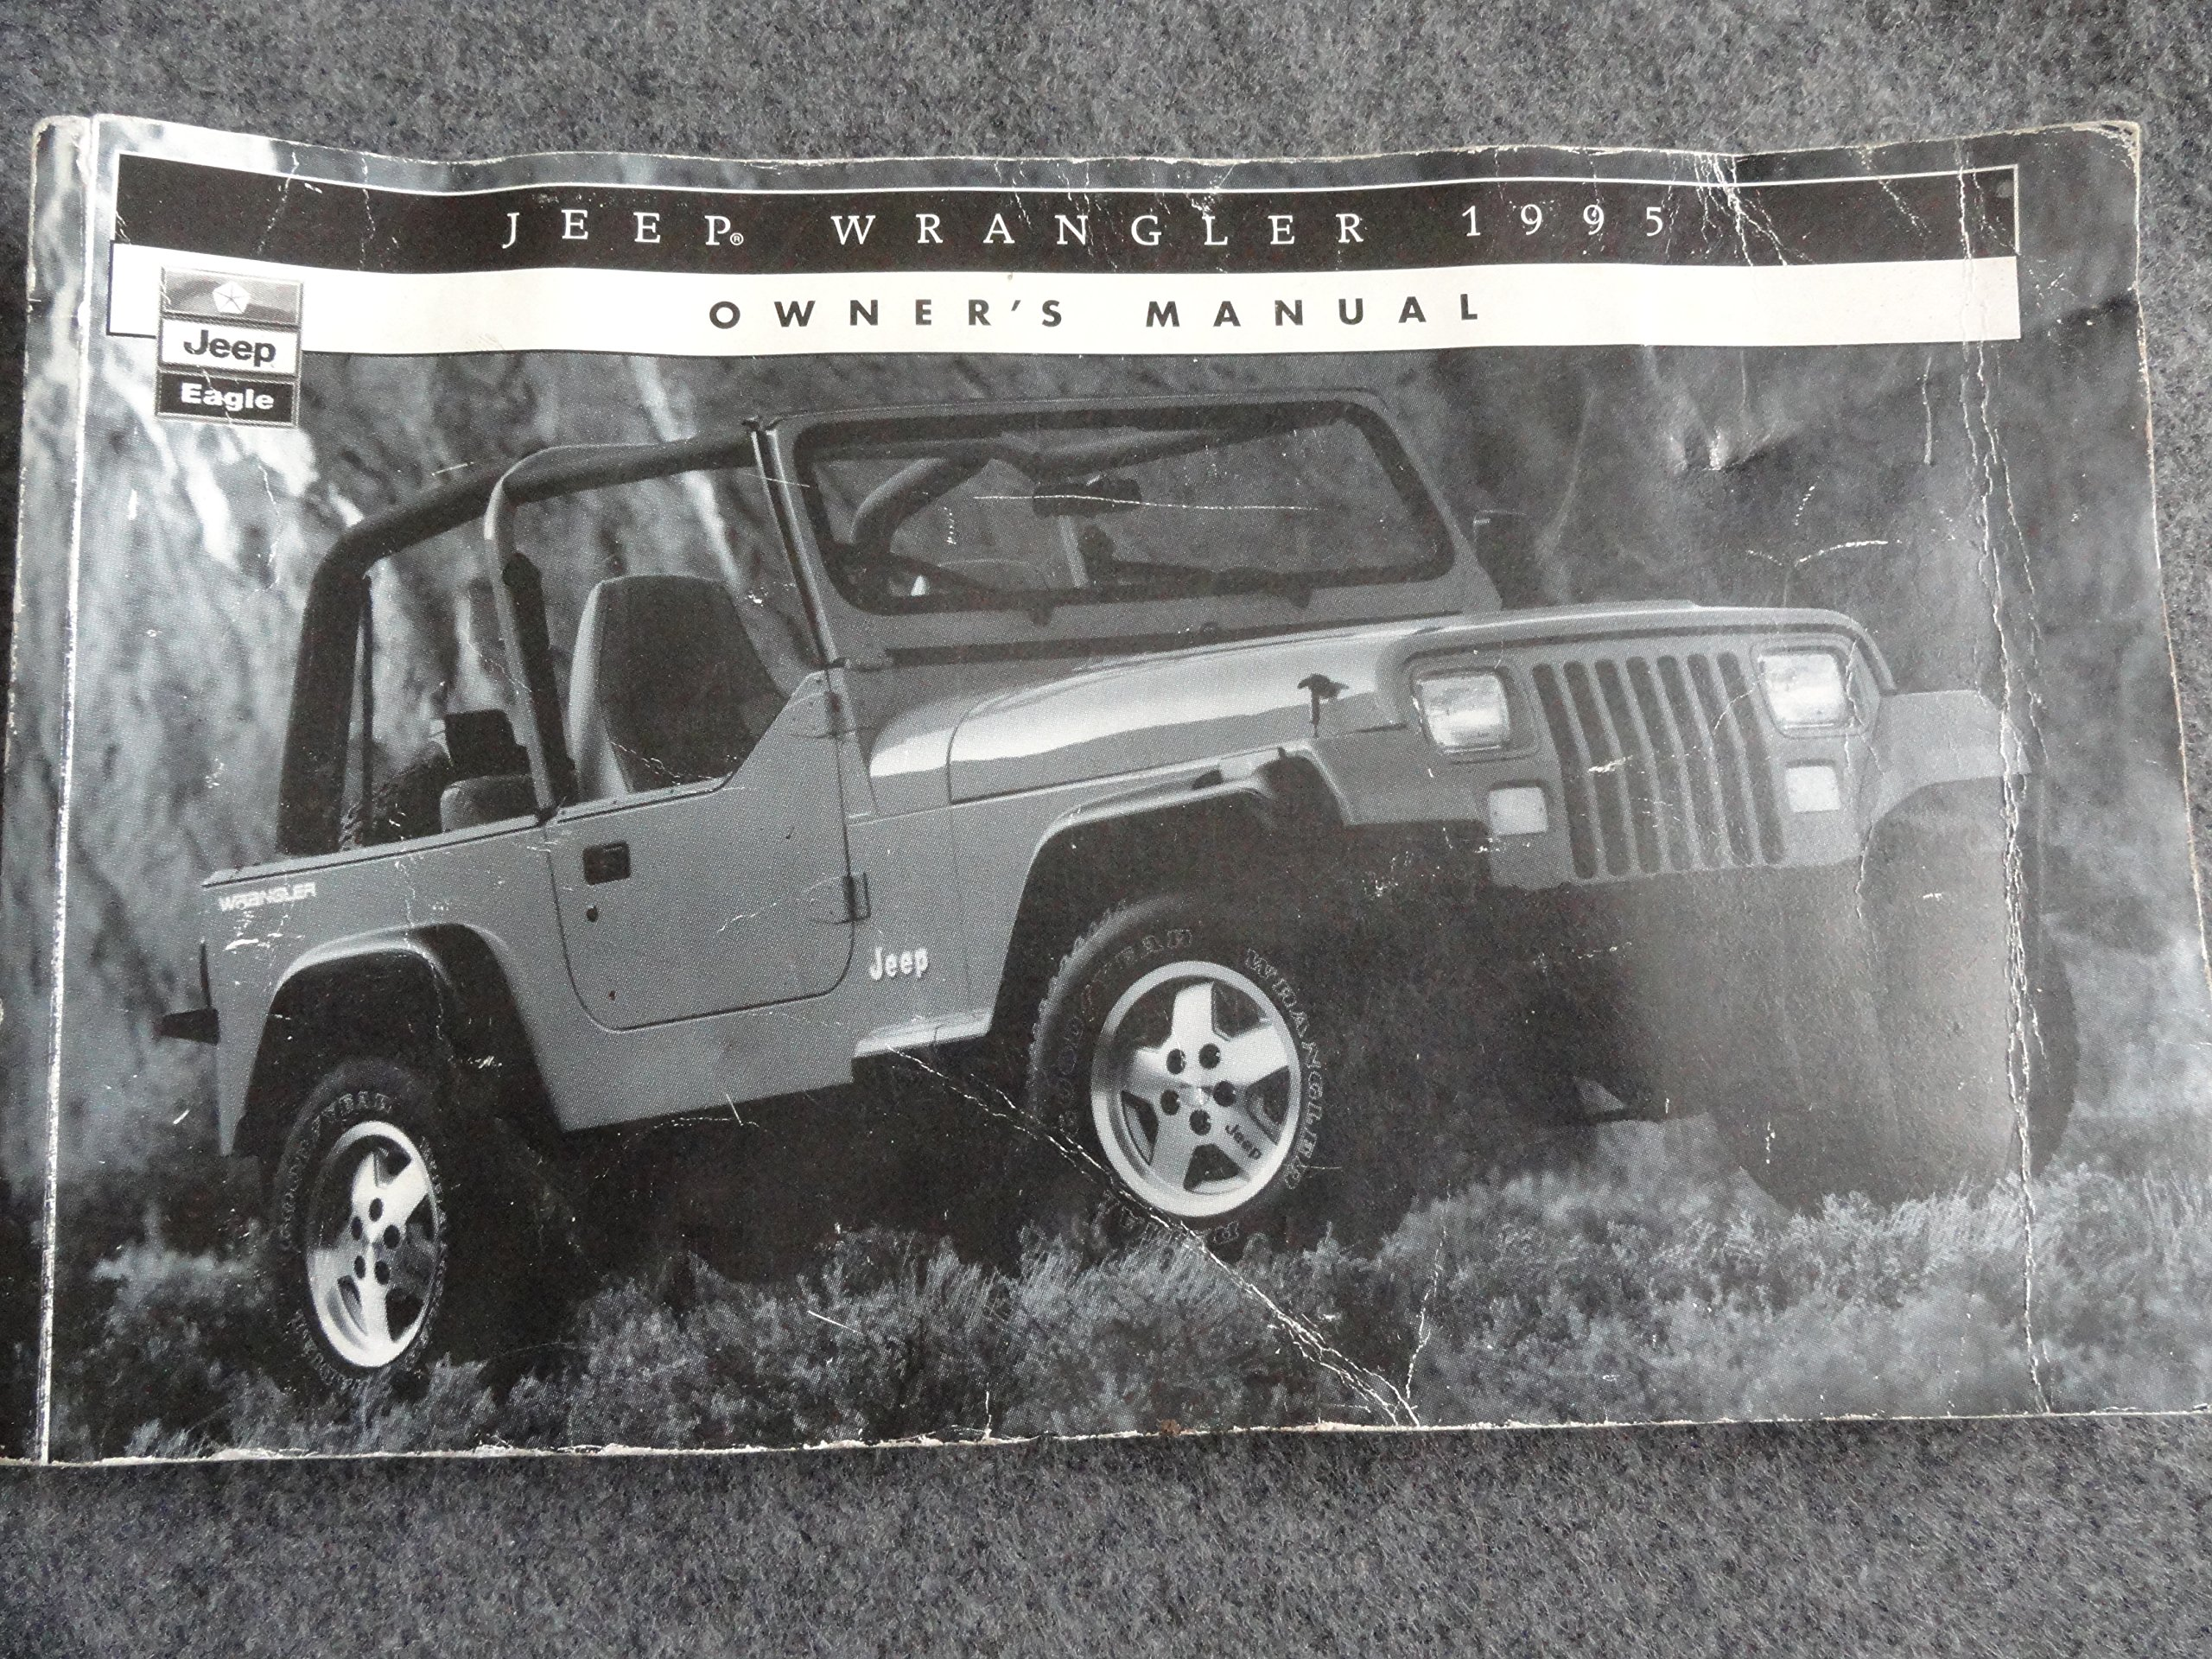 1995 jeep wrangler owners manual jeep amazon com books rh amazon com 1995 jeep wrangler service manual free download 1995 wrangler service manual